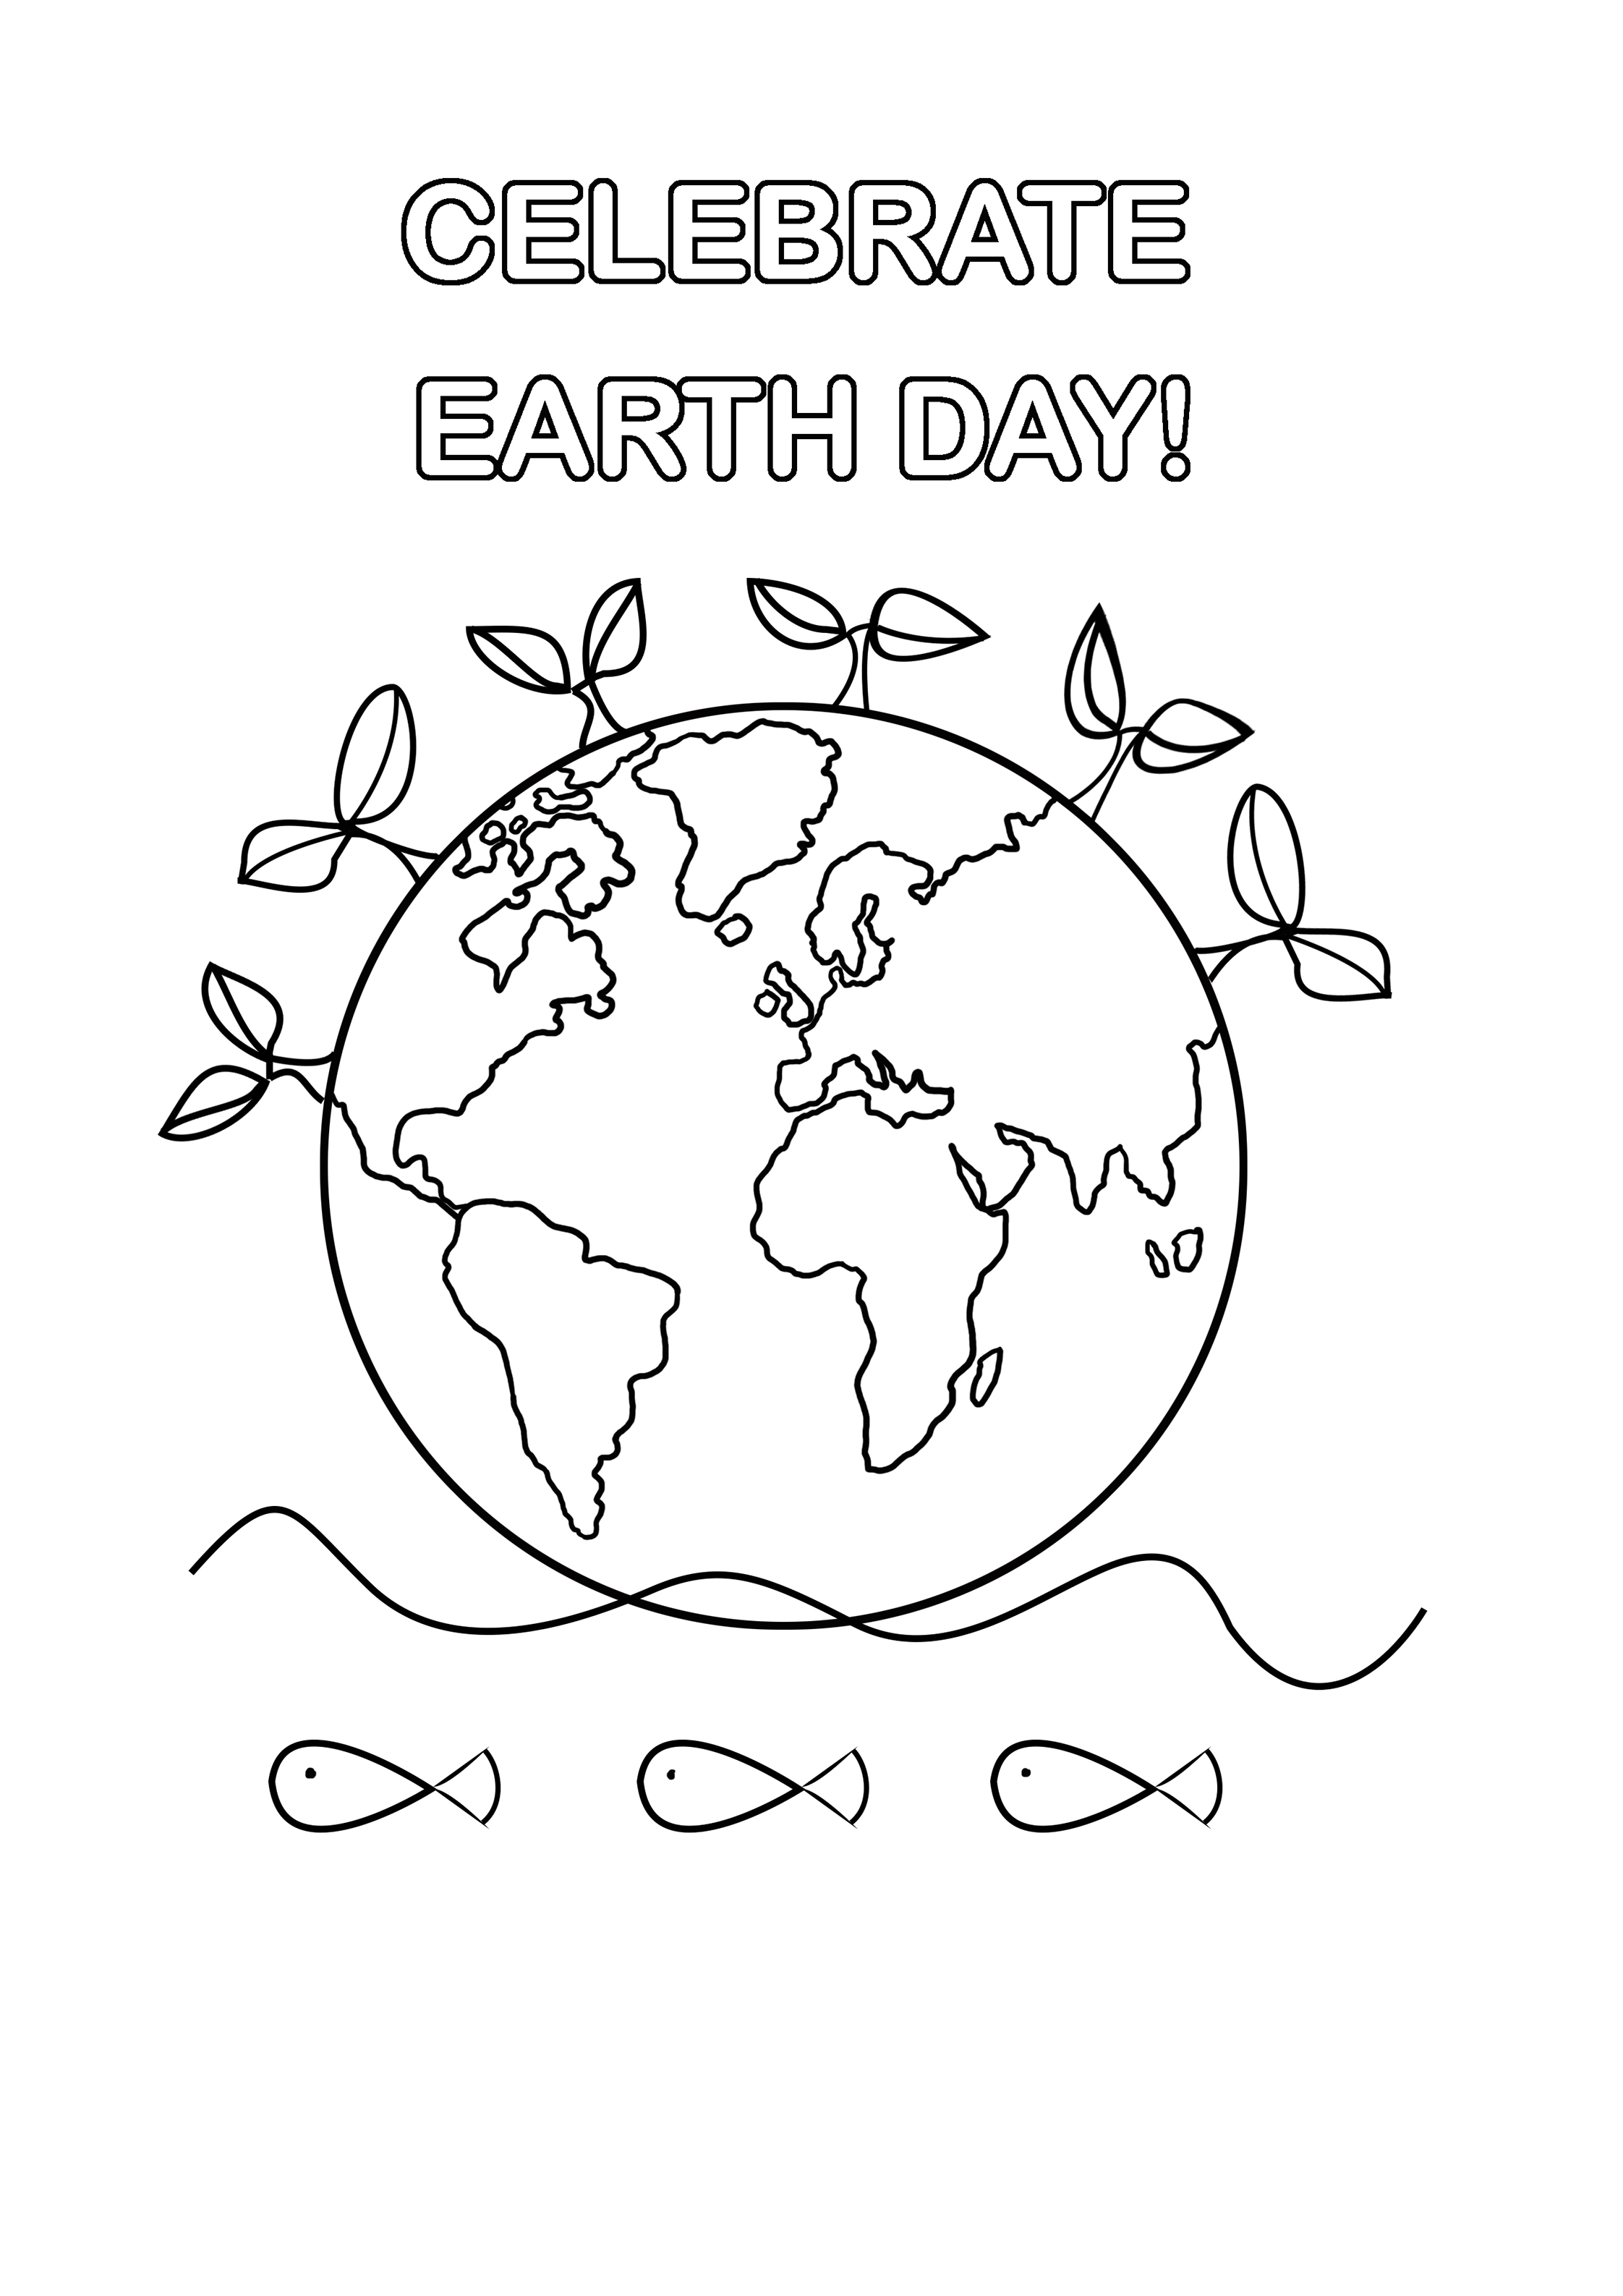 celebrate earth day coloring sheet